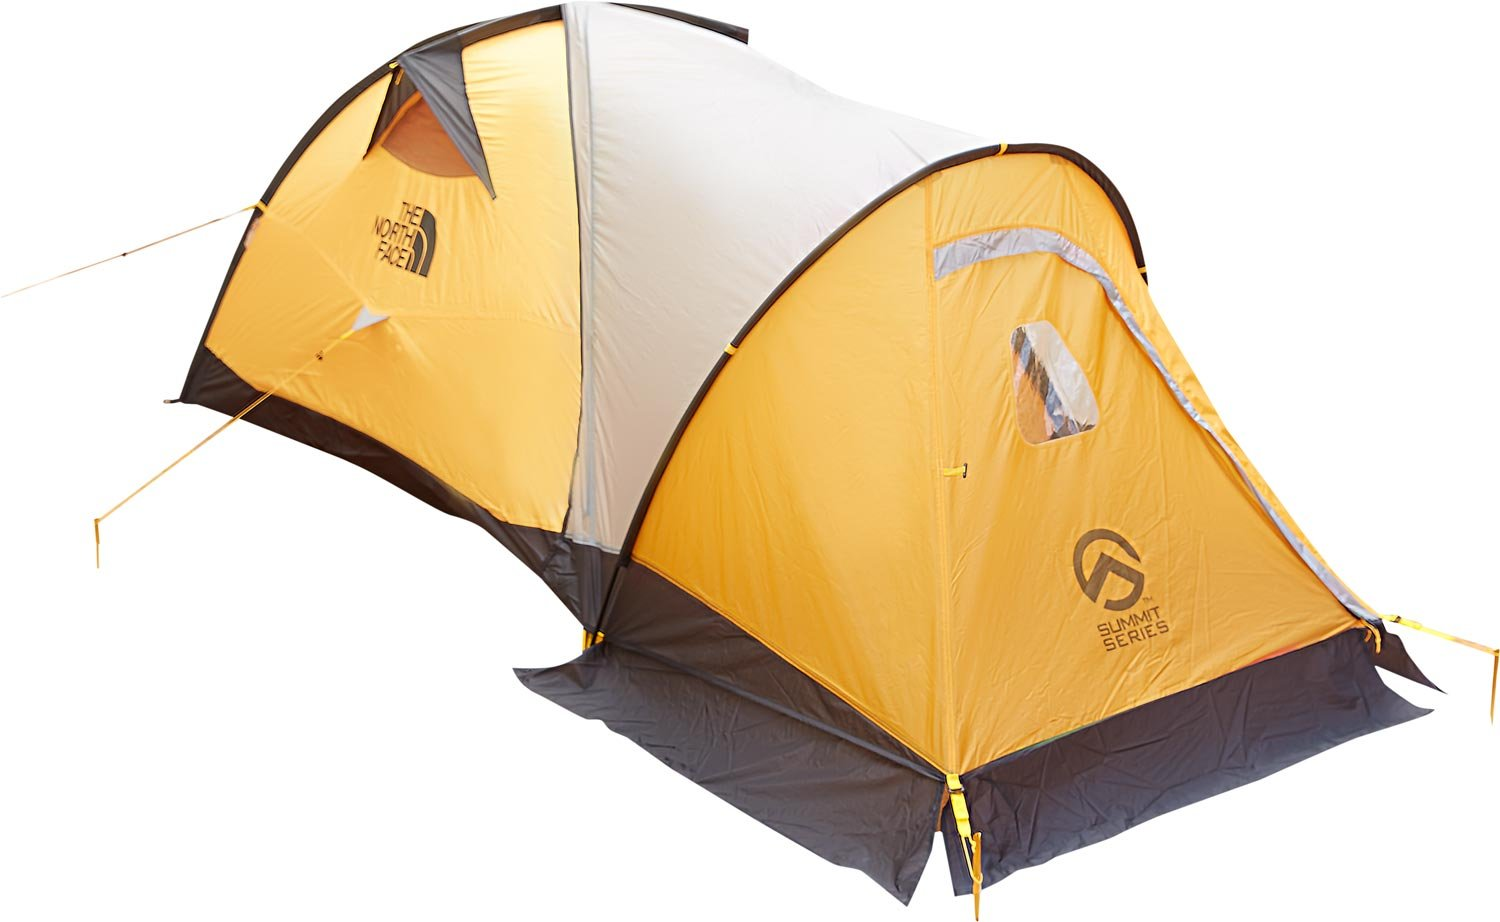 The North Face Erwachsene Accessoires für Zelte Assault 2, Summit Gold/Asphalt Grey, One size, 0888654619294